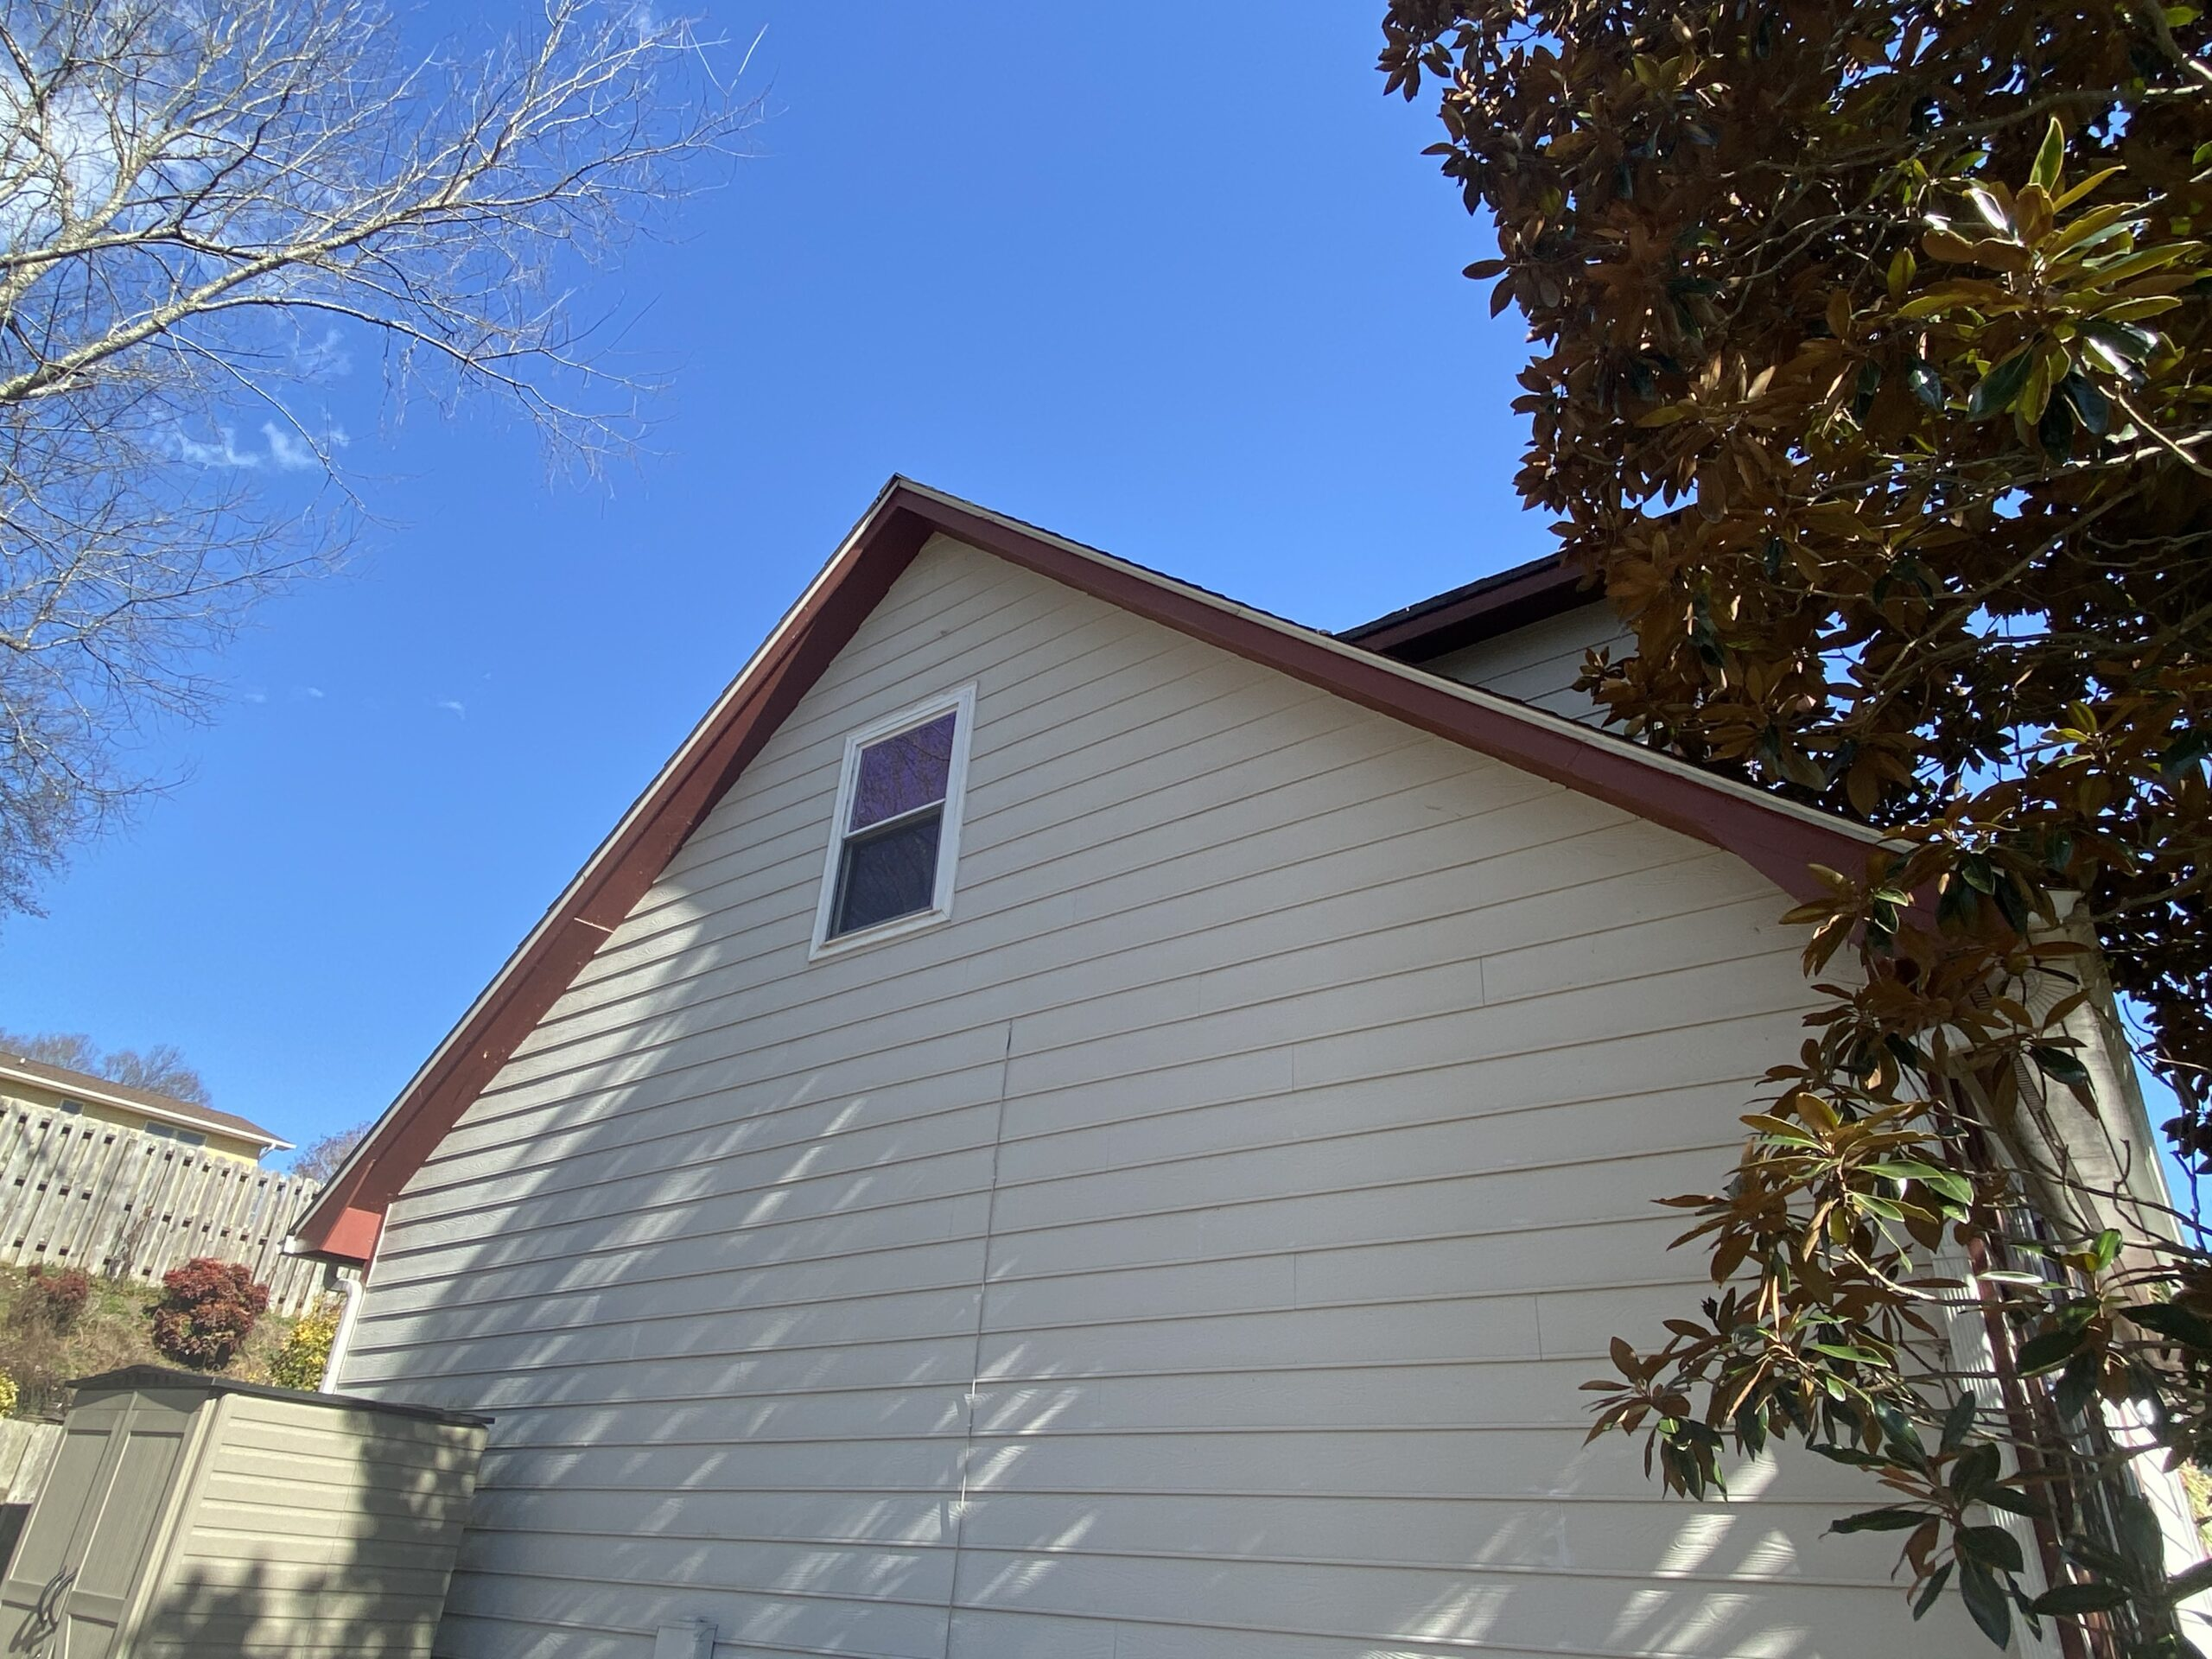 This is a picture of a white home with red trim